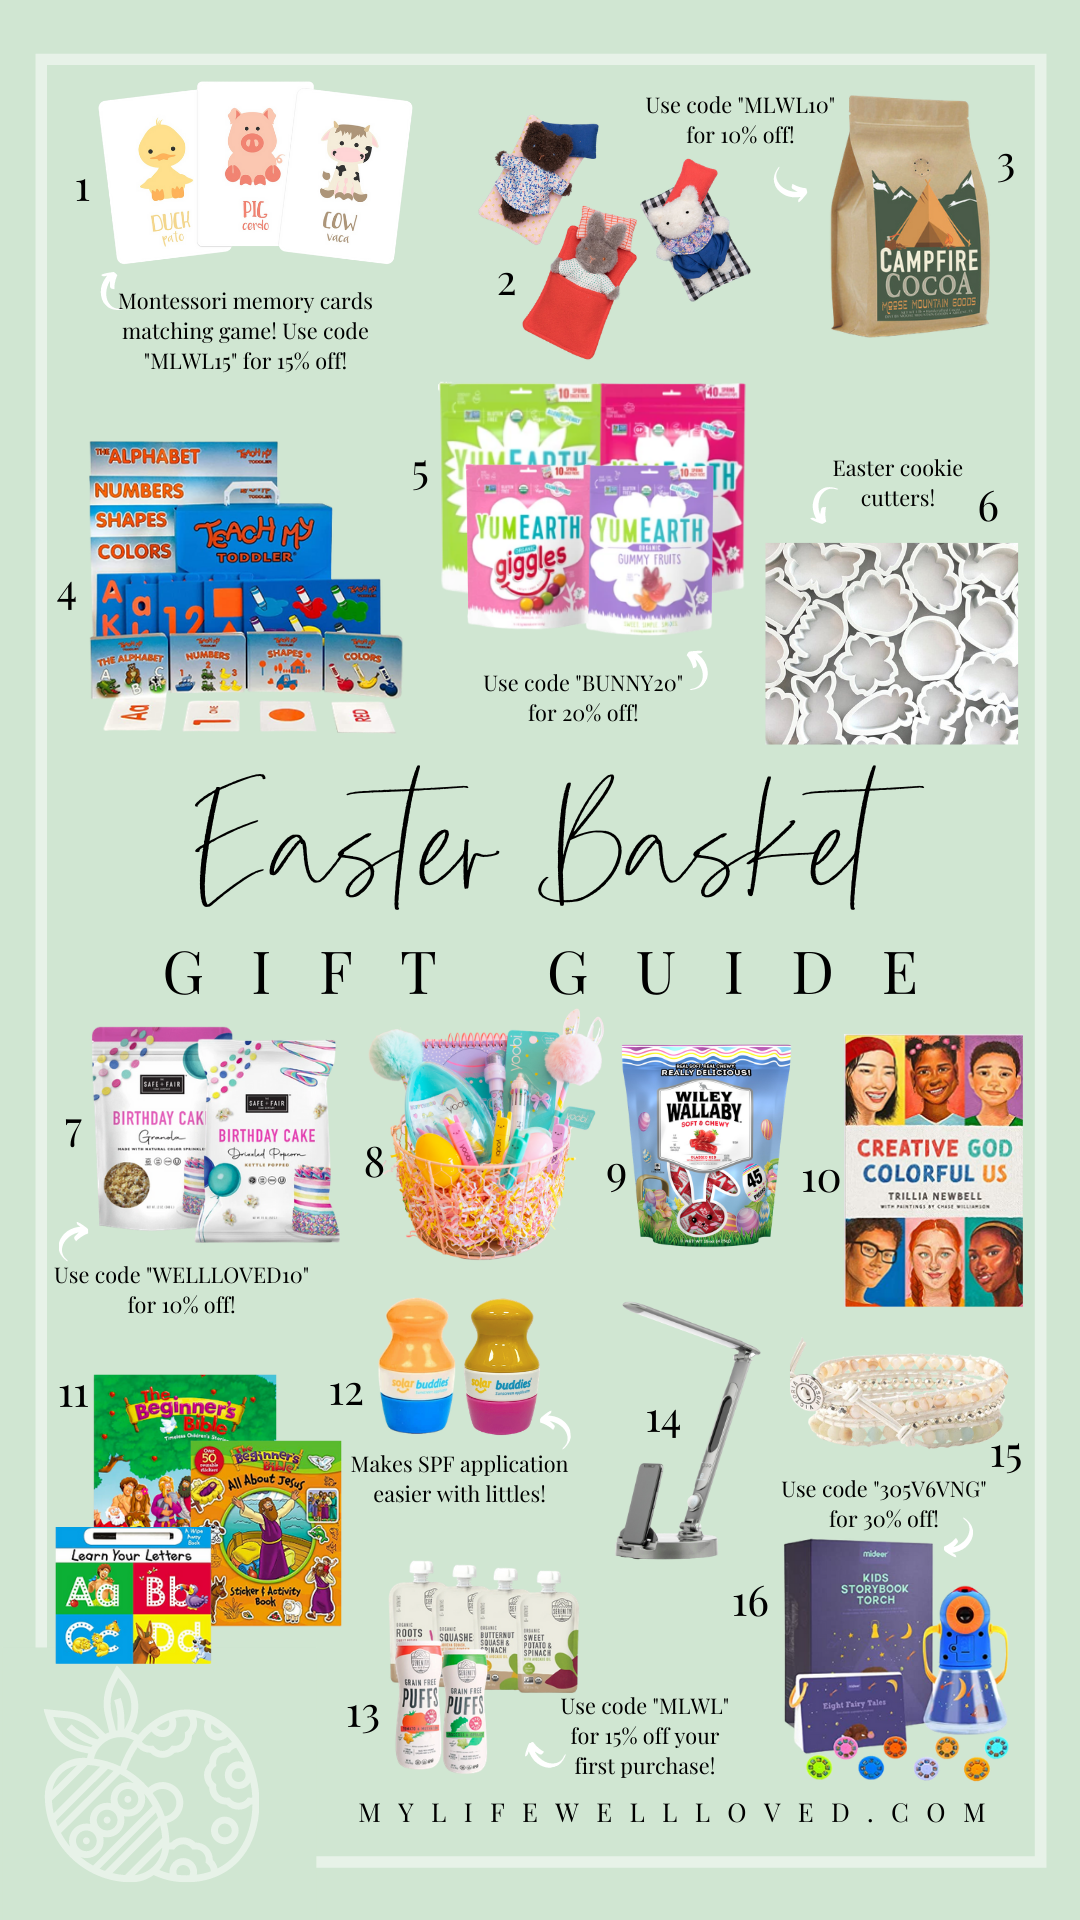 Fun Easter Basket Gift Ideas For Boys And Girls by Alabama Faith + Family blogger, My Life Well Loved // Heather Brown